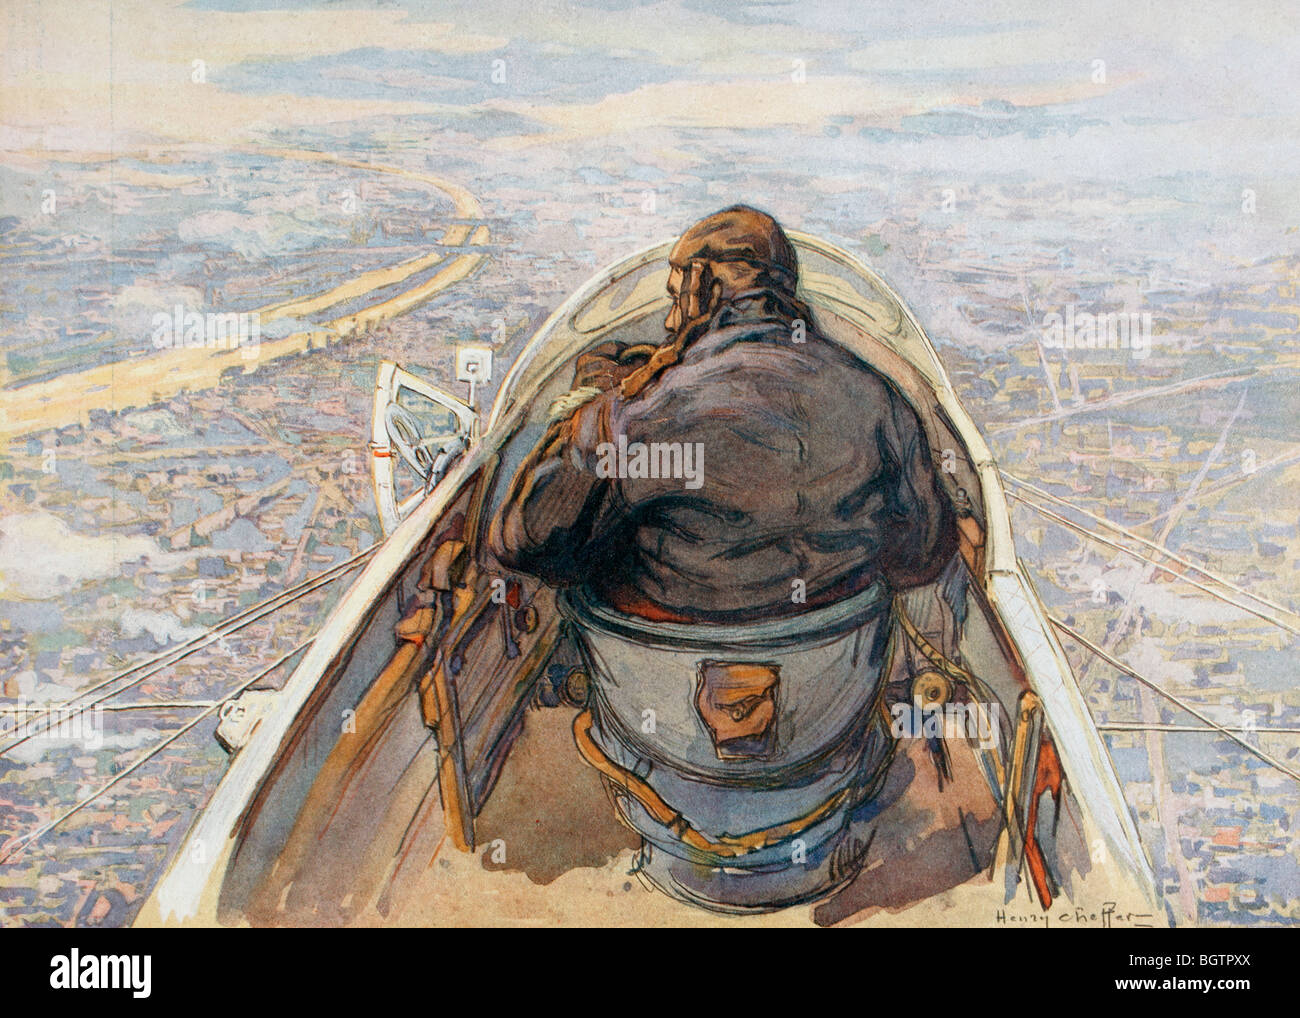 Birds eye view of Paris from a reconnaissance plane during the First World War. - Stock Image